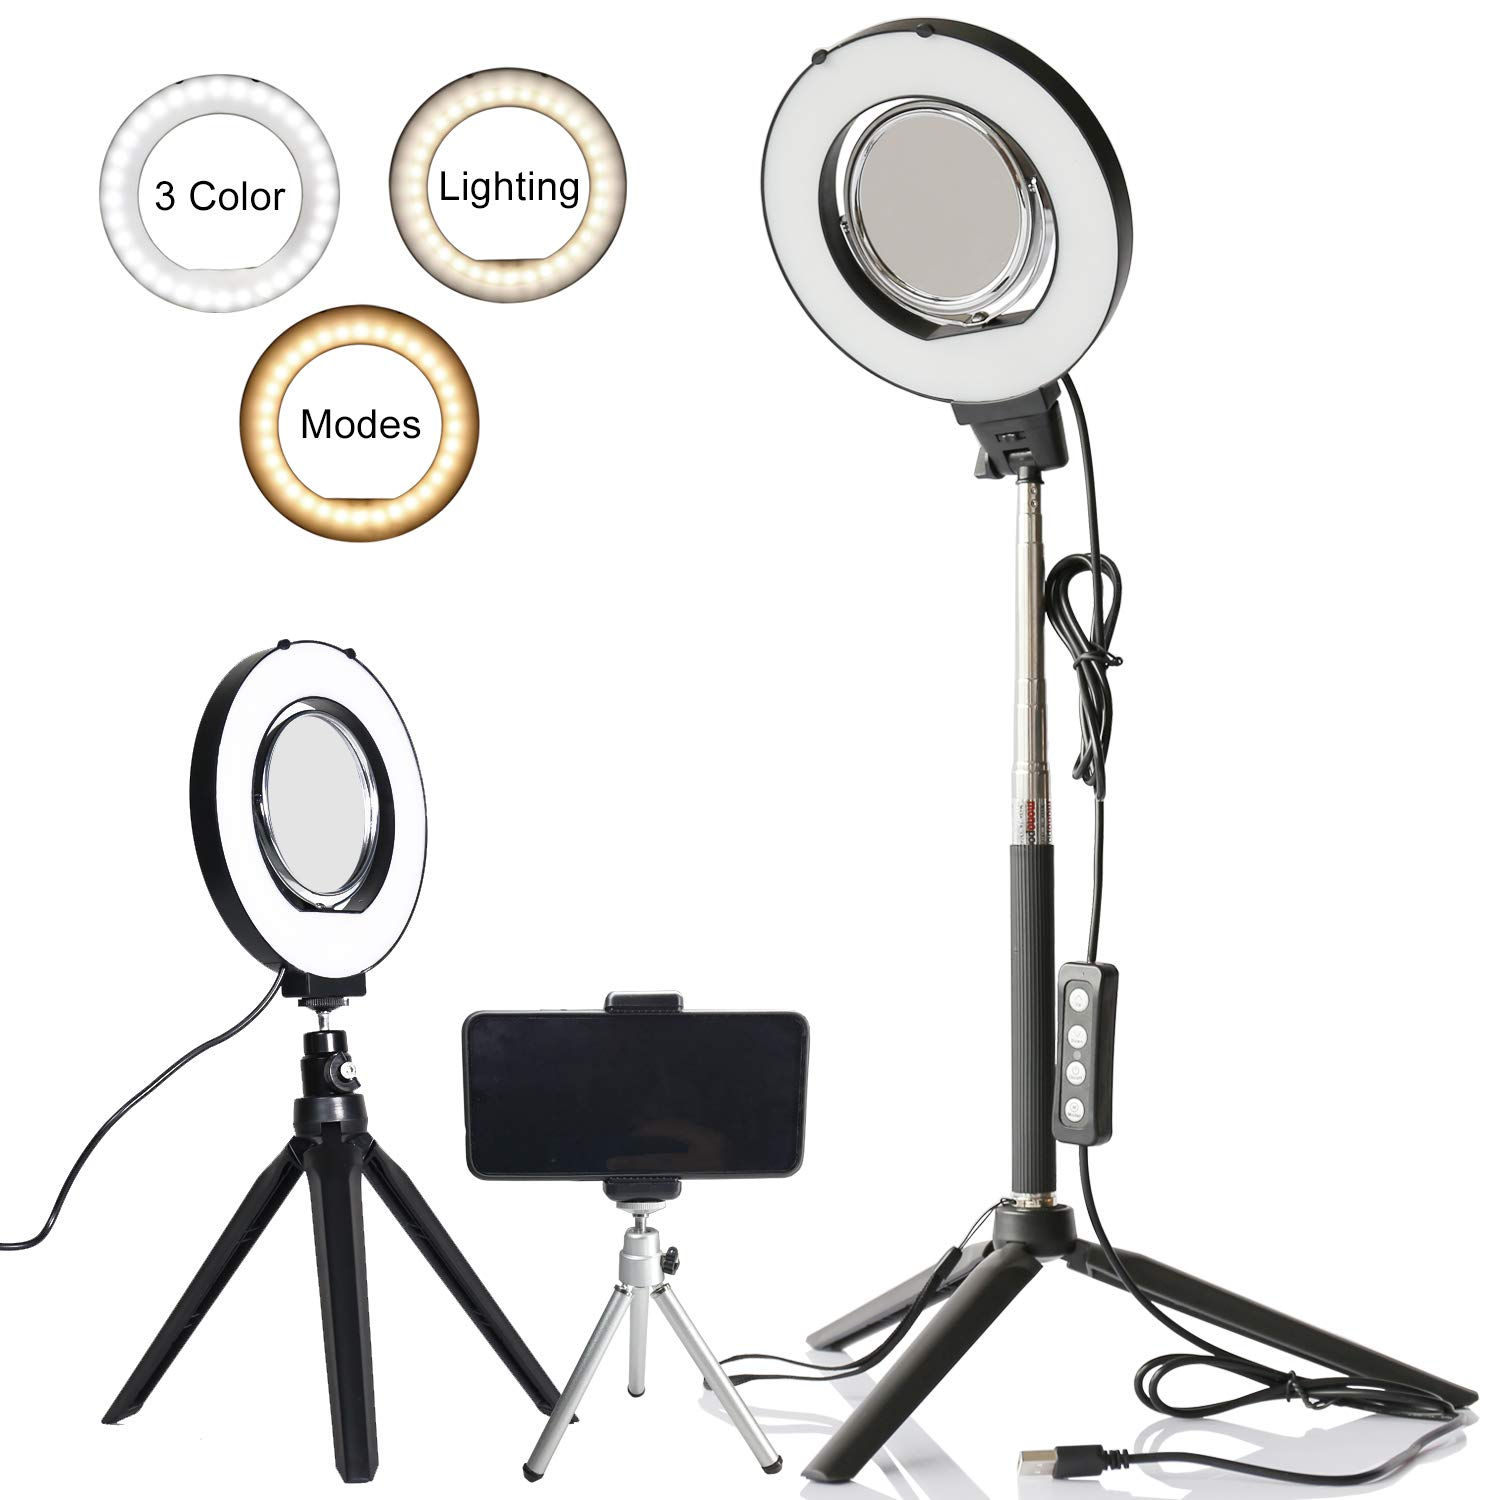 6'' Dimmable Ring Light Selfie Live Stream Lighting&Adjust Stick Stand& 3'' Mirror&Phone Holder for Makeup Photography Mini LED Ring Lamp Outdoor Camera Photo Video Lighting Kit(3 Colors Lighting Mode)